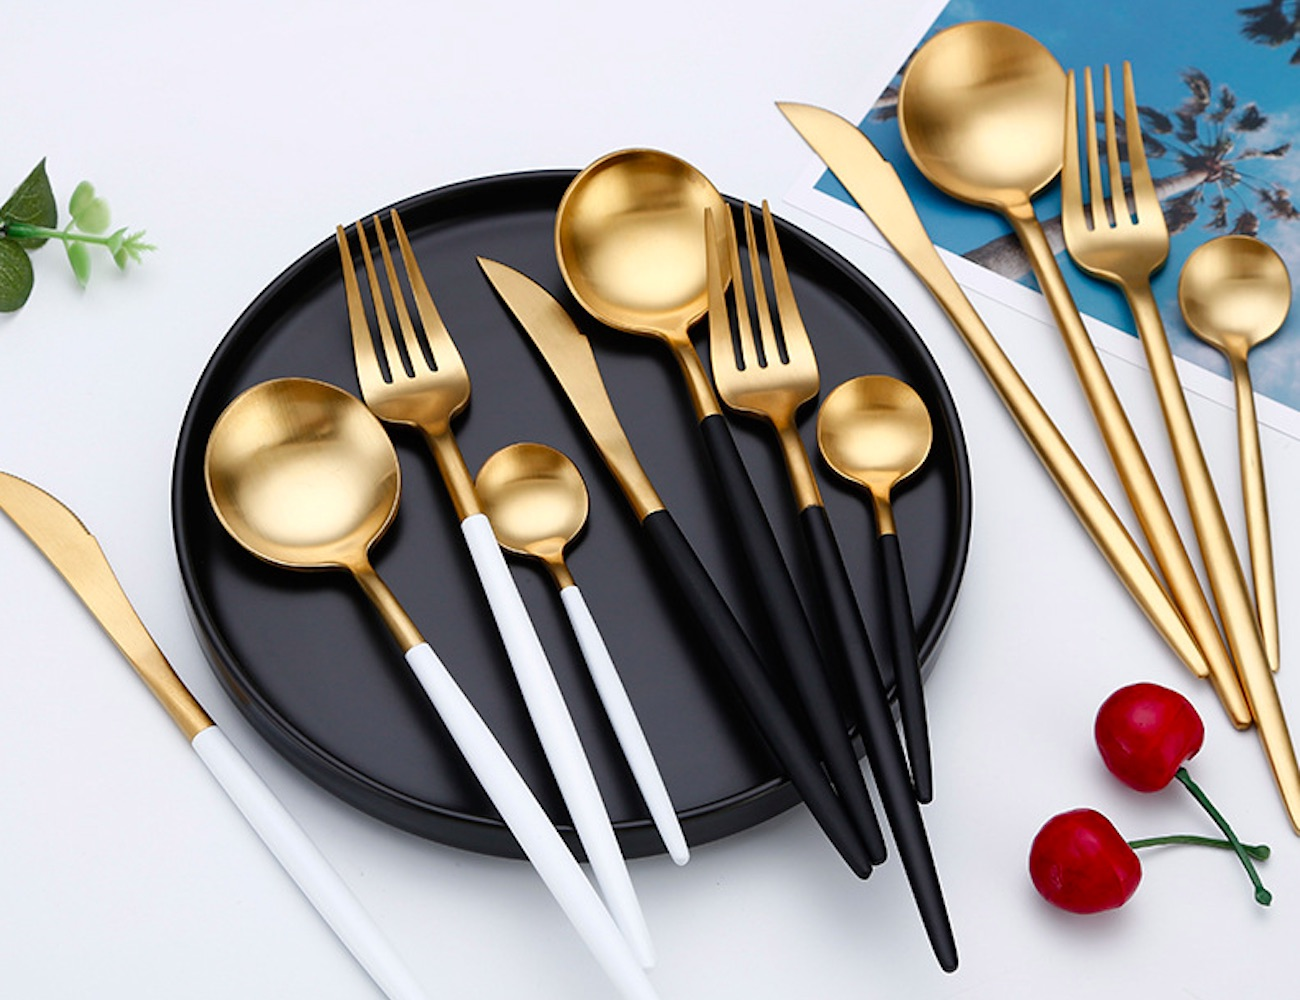 Modern Metallic Cutlery Set brings style to your table